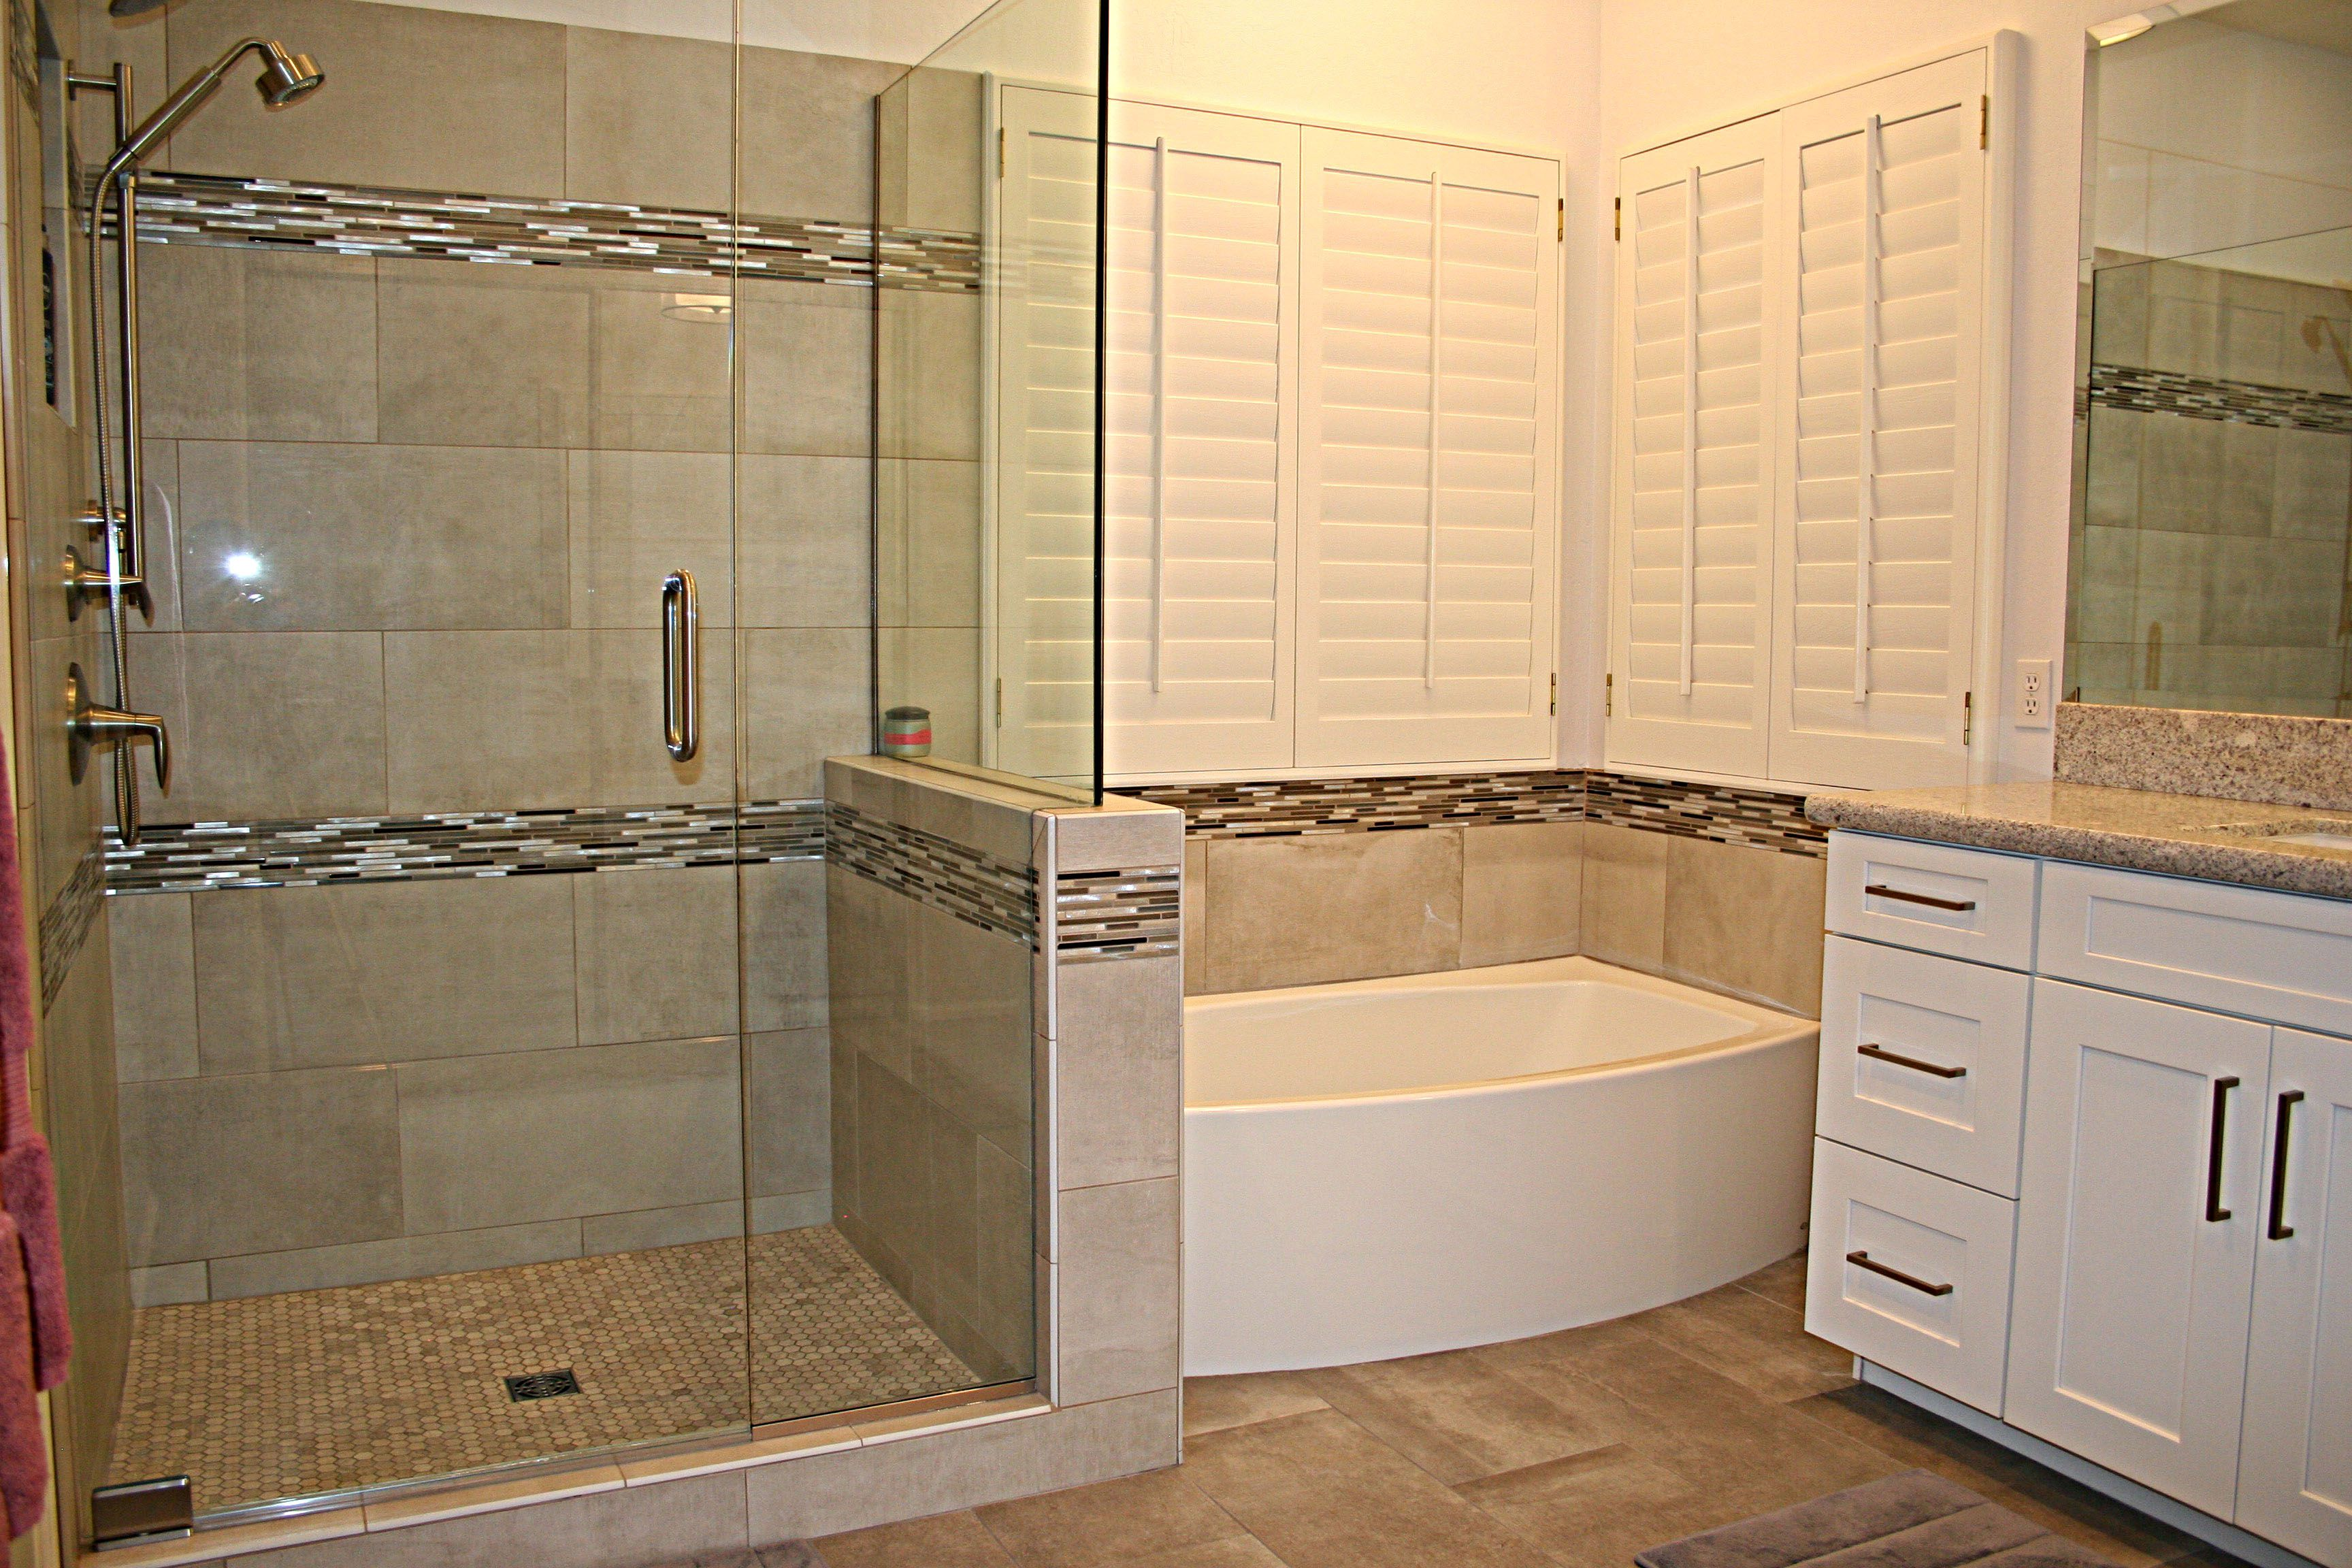 Pin By Unique Building Concepts On Metallix Collection Bathrooms Remodel Remodel Bath Remodel [ jpg ]